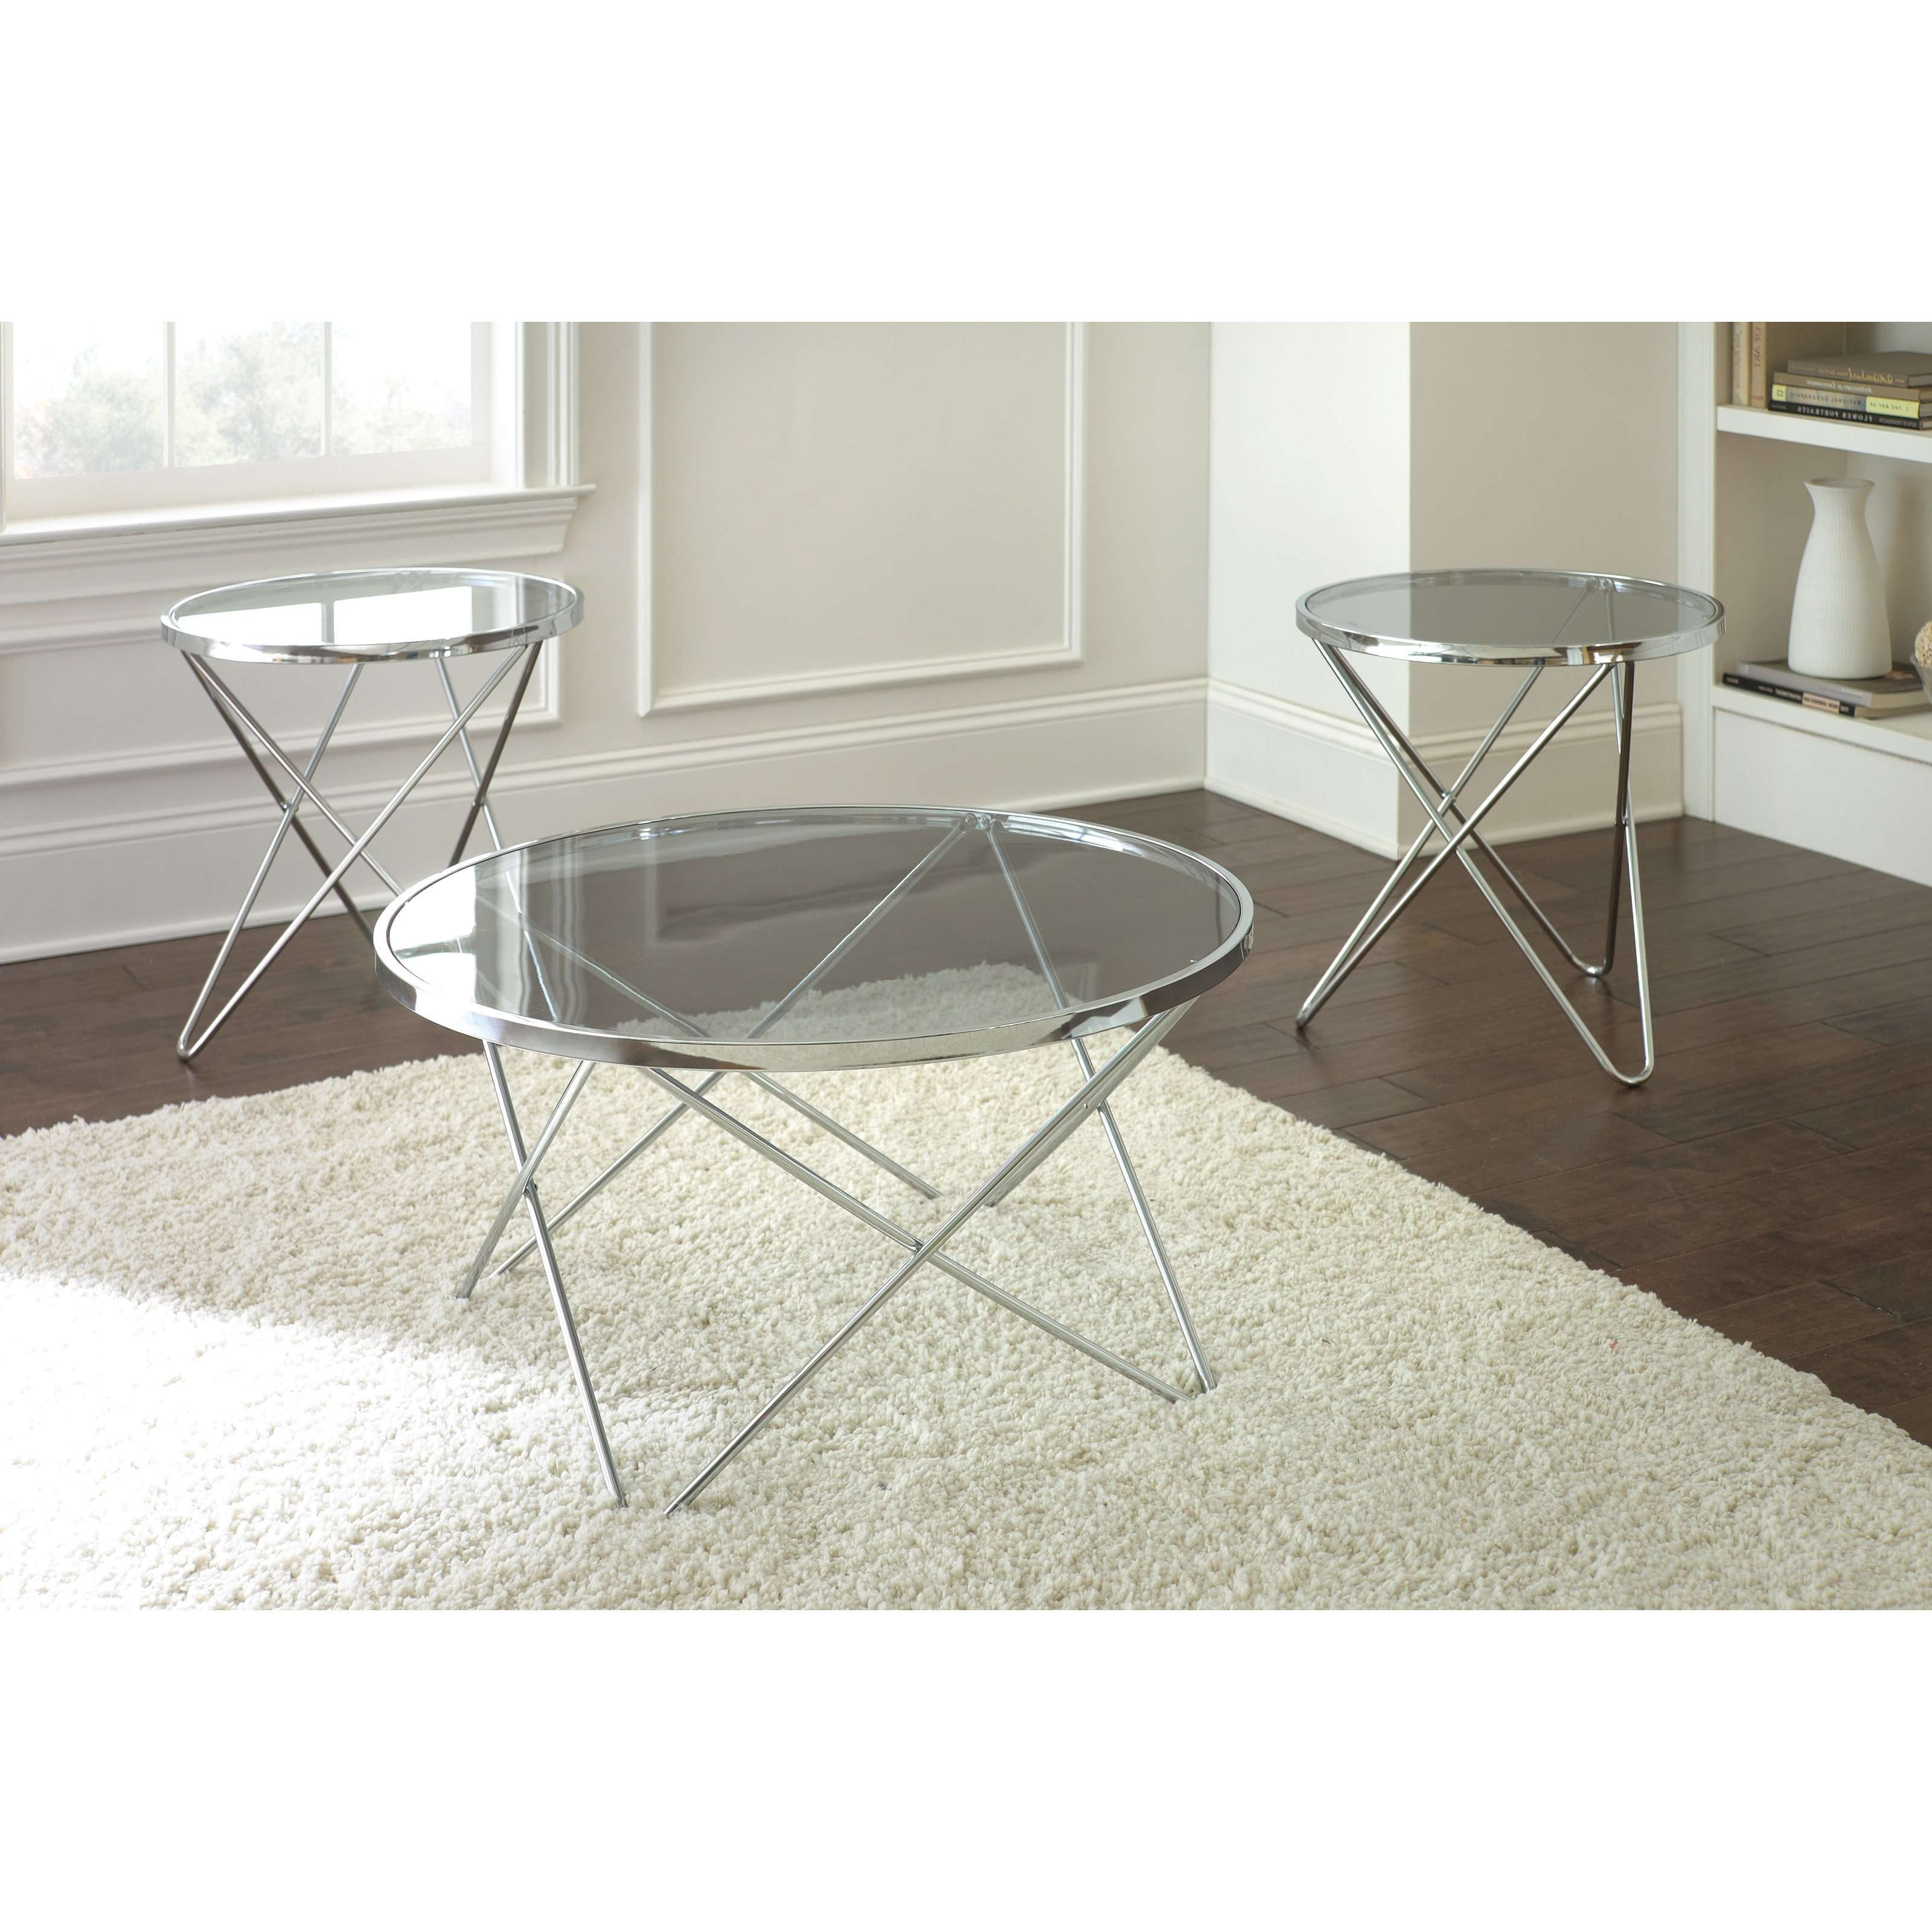 Most Current Wayfair Glass Coffee Tables Pertaining To Coffee Tables : Coffee Table Wayfair Glass In Splendid Round (View 11 of 20)